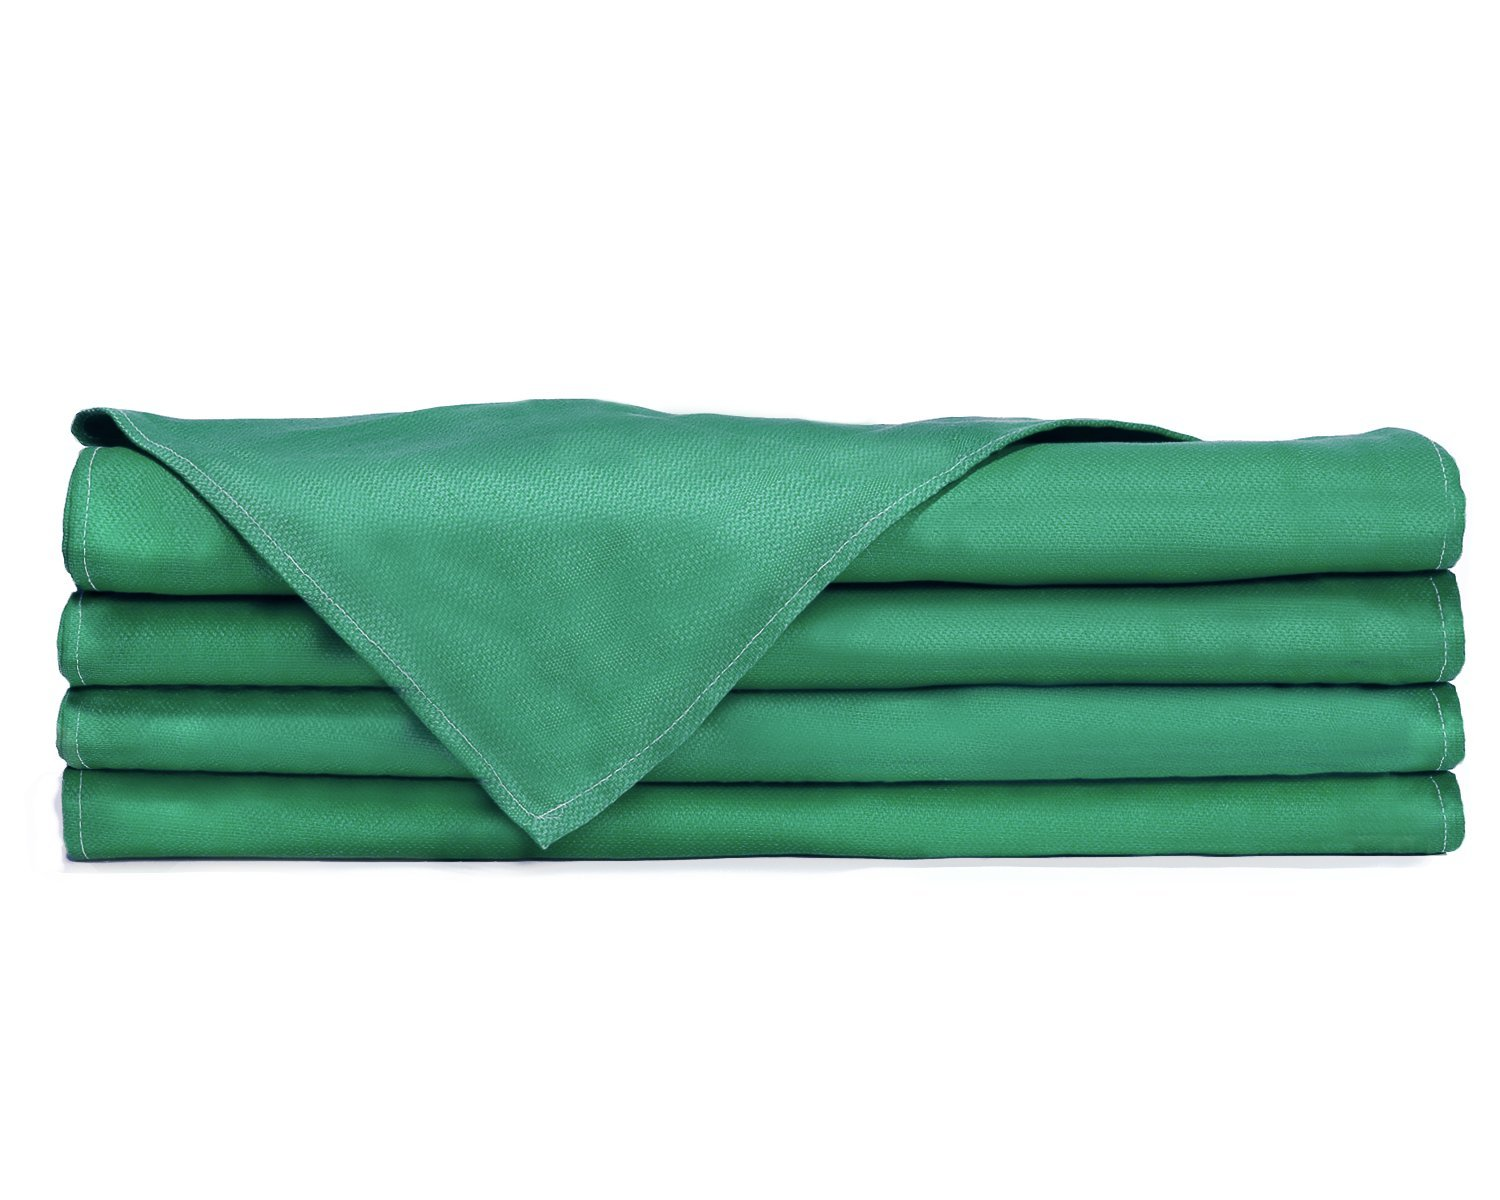 Towels by Doctor Joe 9-SUR-G24R-6EA Jade Green 18'' x 33'' Large Surgical Absorbent Towel, (Pack of 6) by Towels by Doctor Joe